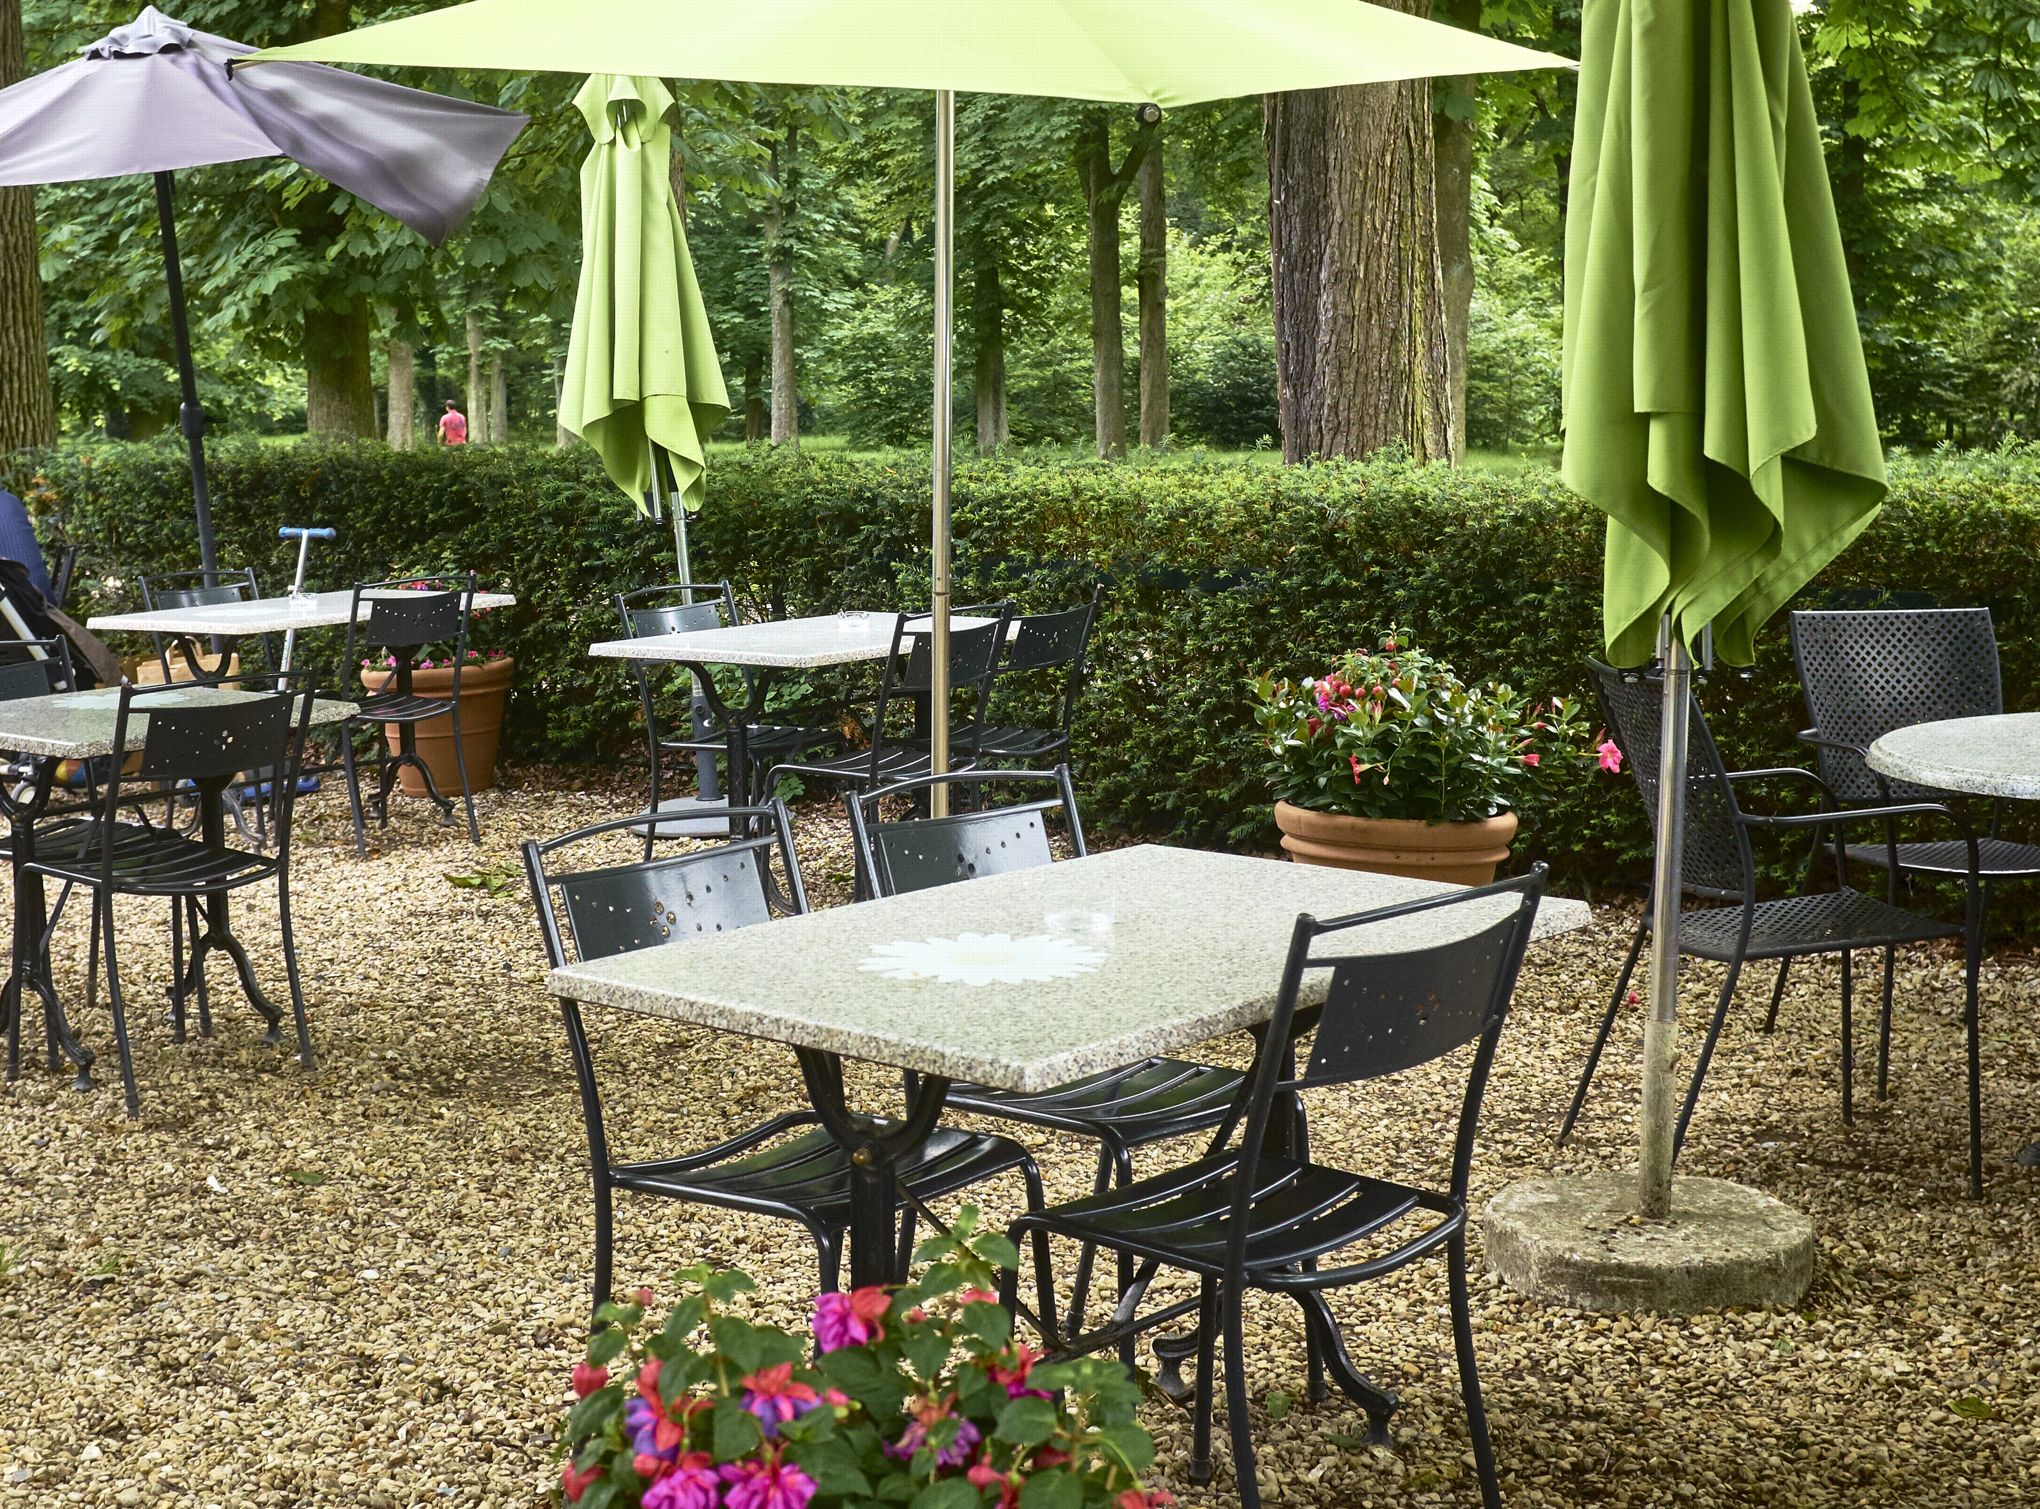 Les 5 terrasses au jardin paris for Restaurant paris terrasse jardin